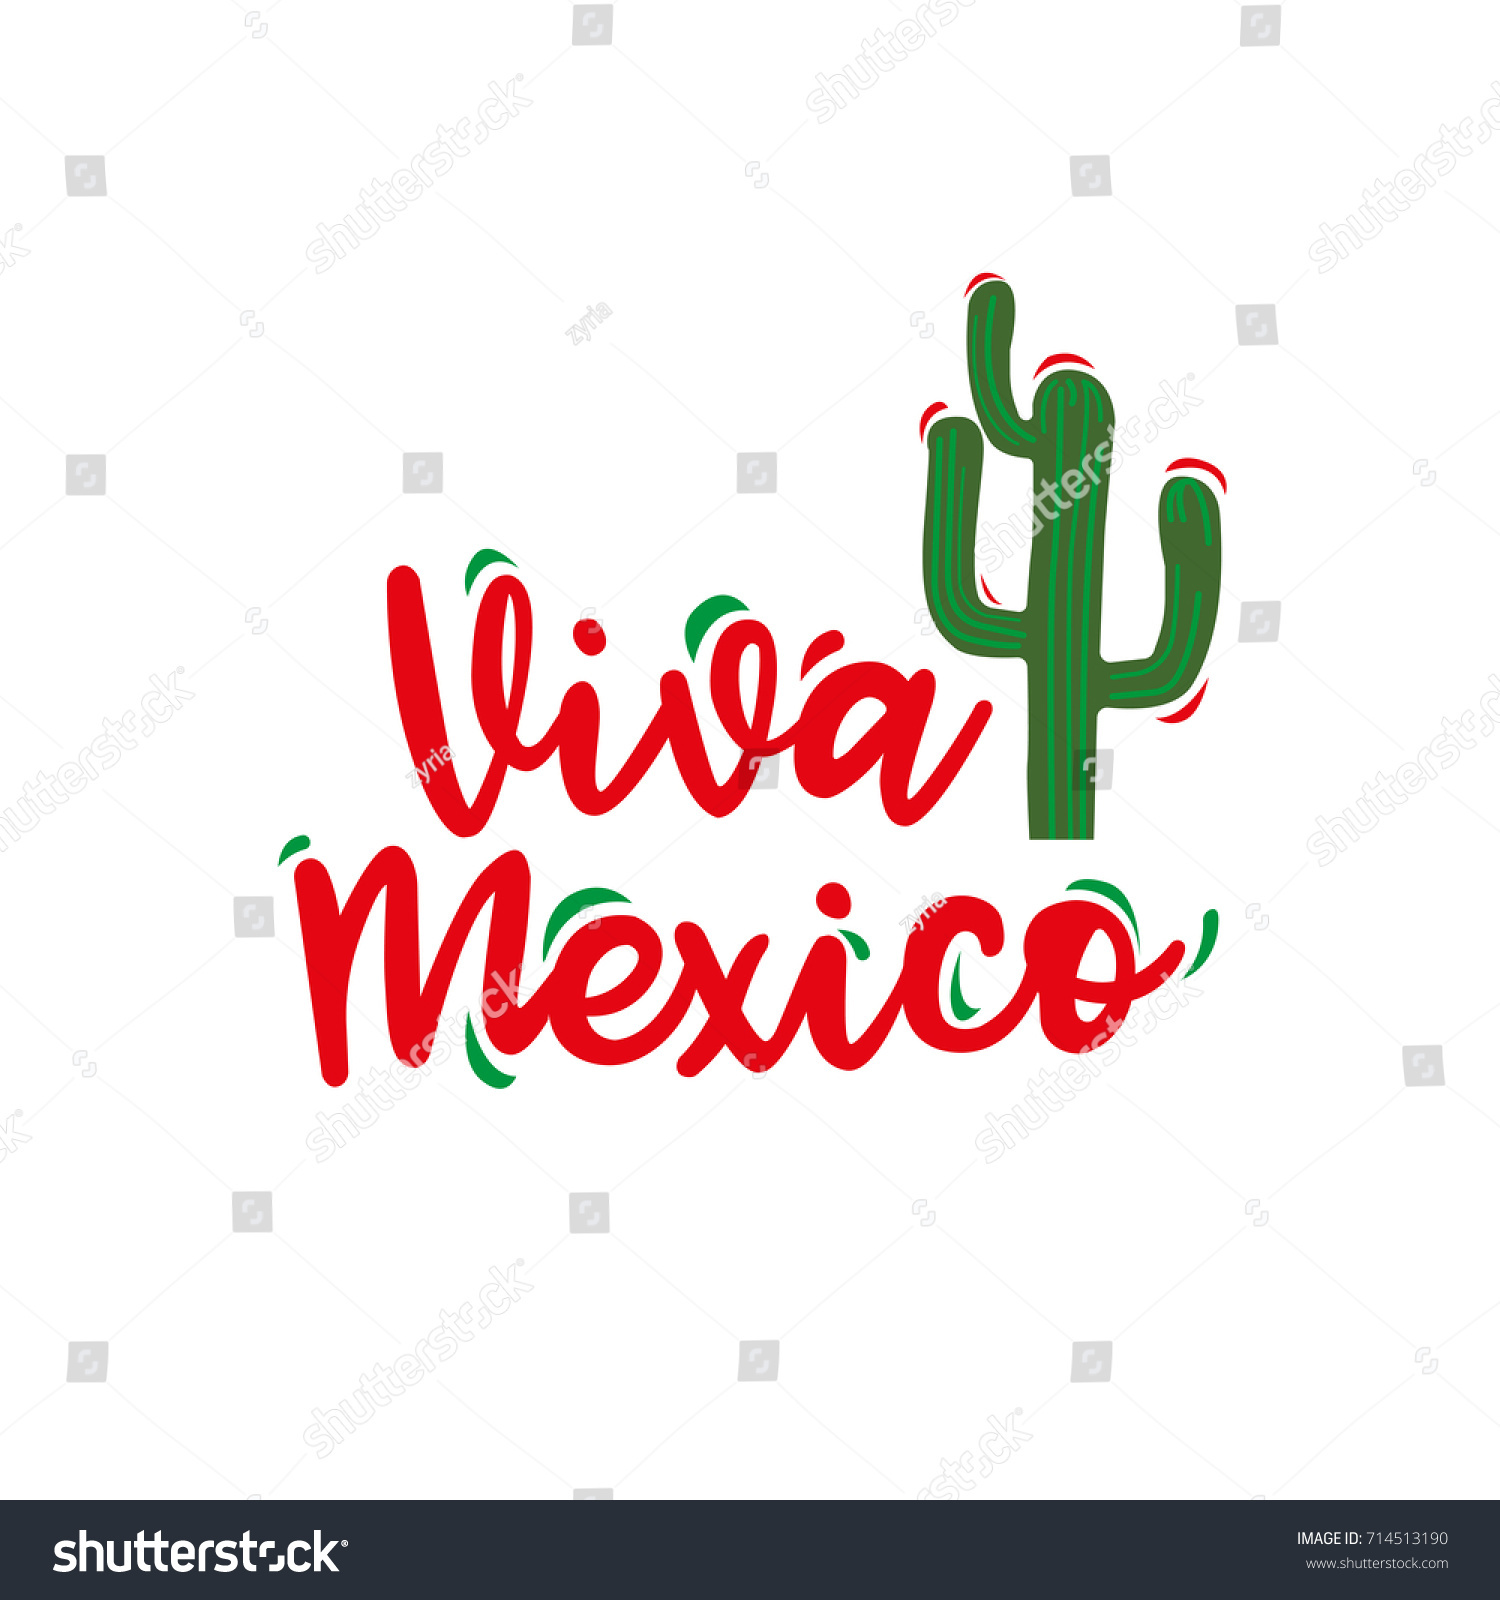 Viva mexico traditional mexican phrase holiday stock vector hd viva mexico traditional mexican phrase holiday hand written lettering for greeting card isolated m4hsunfo